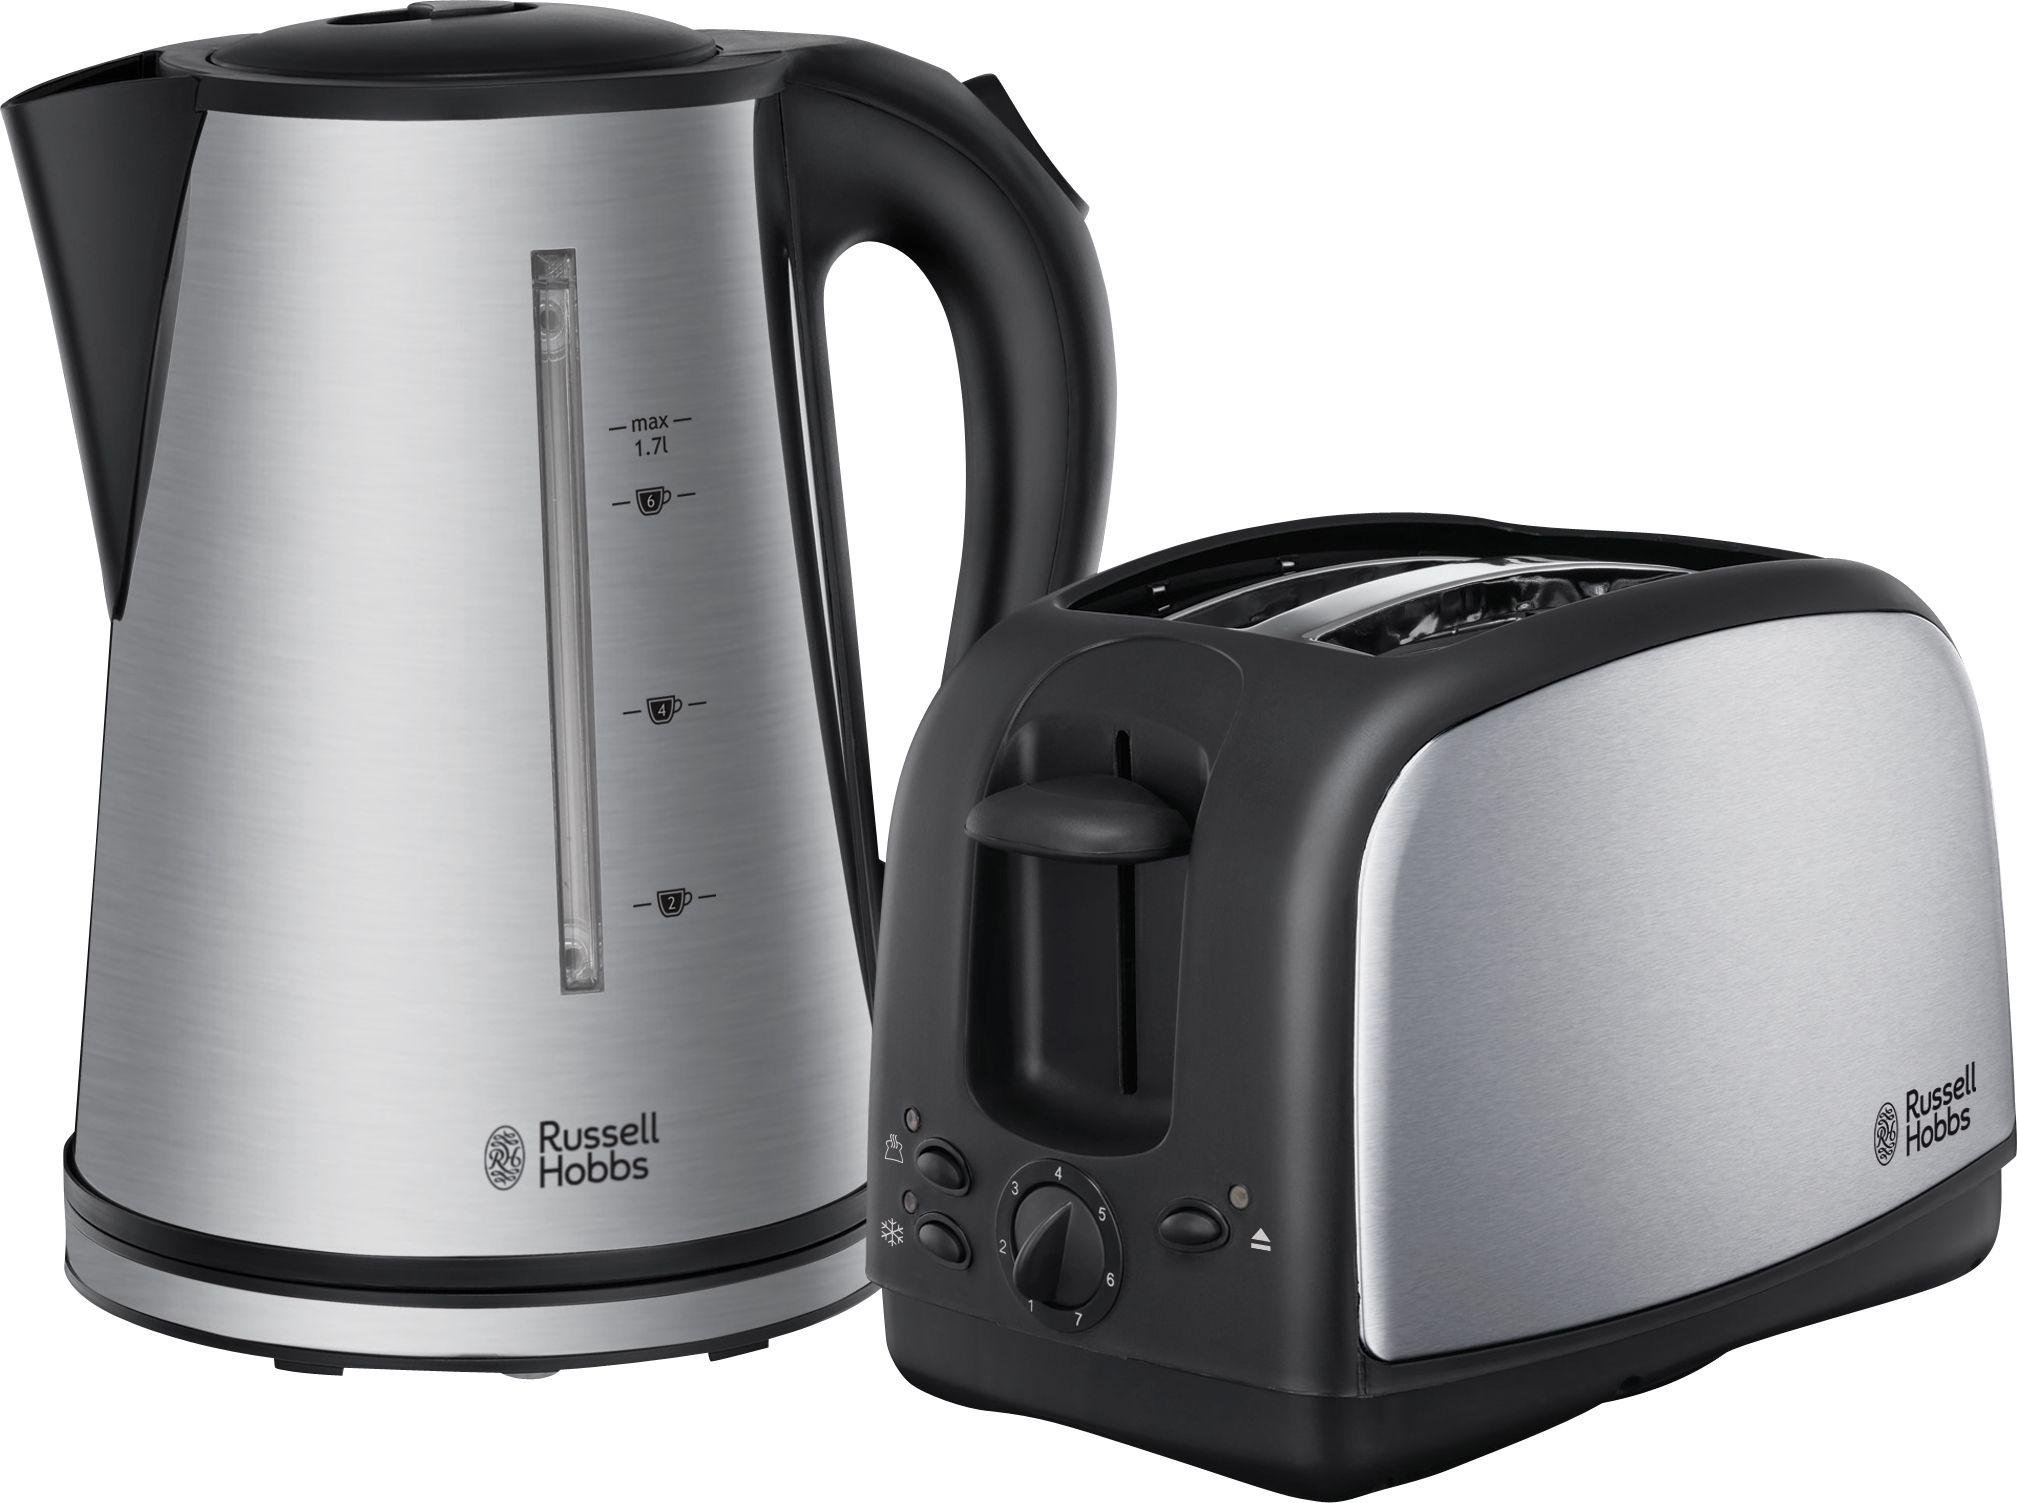 russell hobbs oxford kettle toaster twin pack. Black Bedroom Furniture Sets. Home Design Ideas